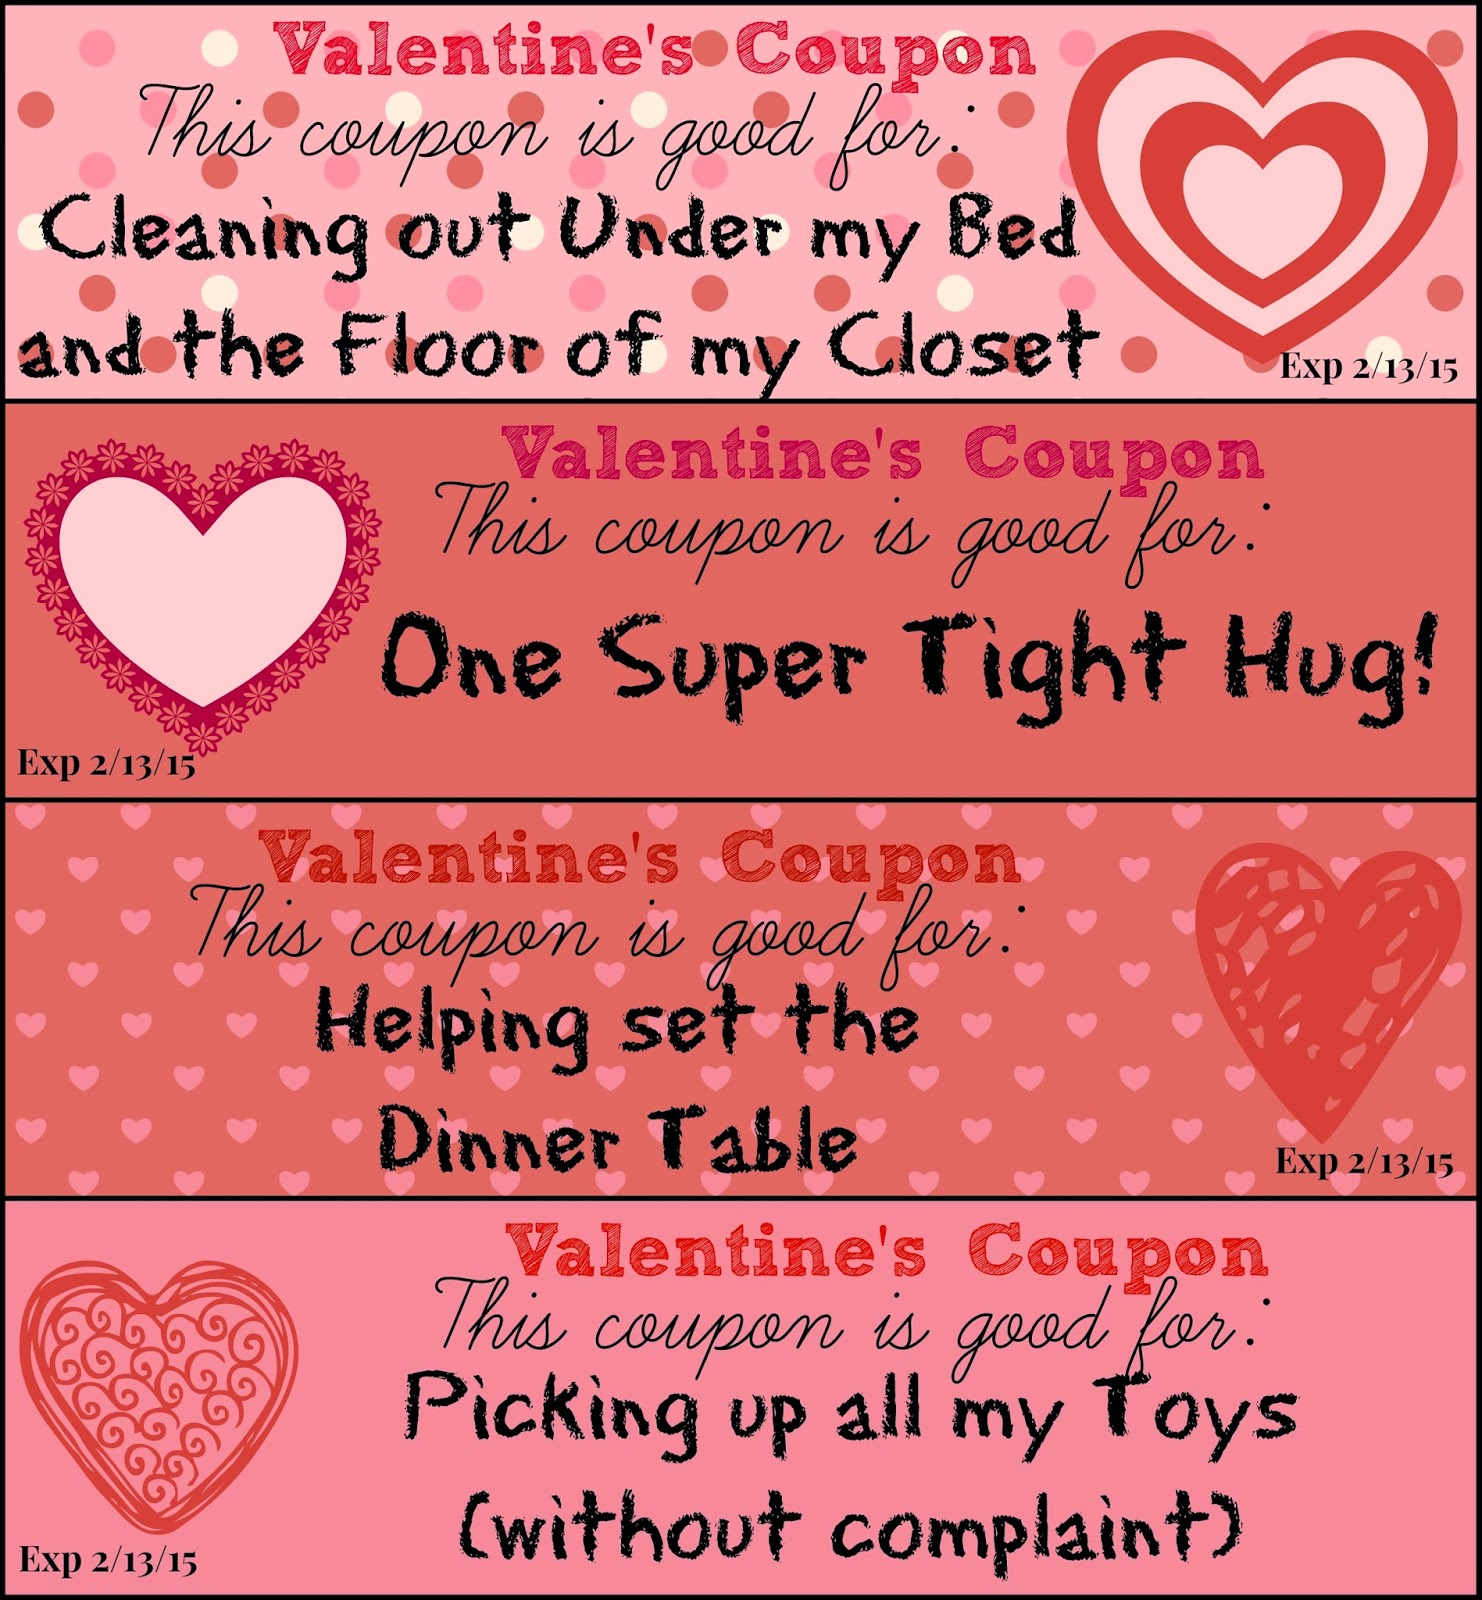 what are good ideas for a parent coupon book answerscom - Valentines Day Coupon Book